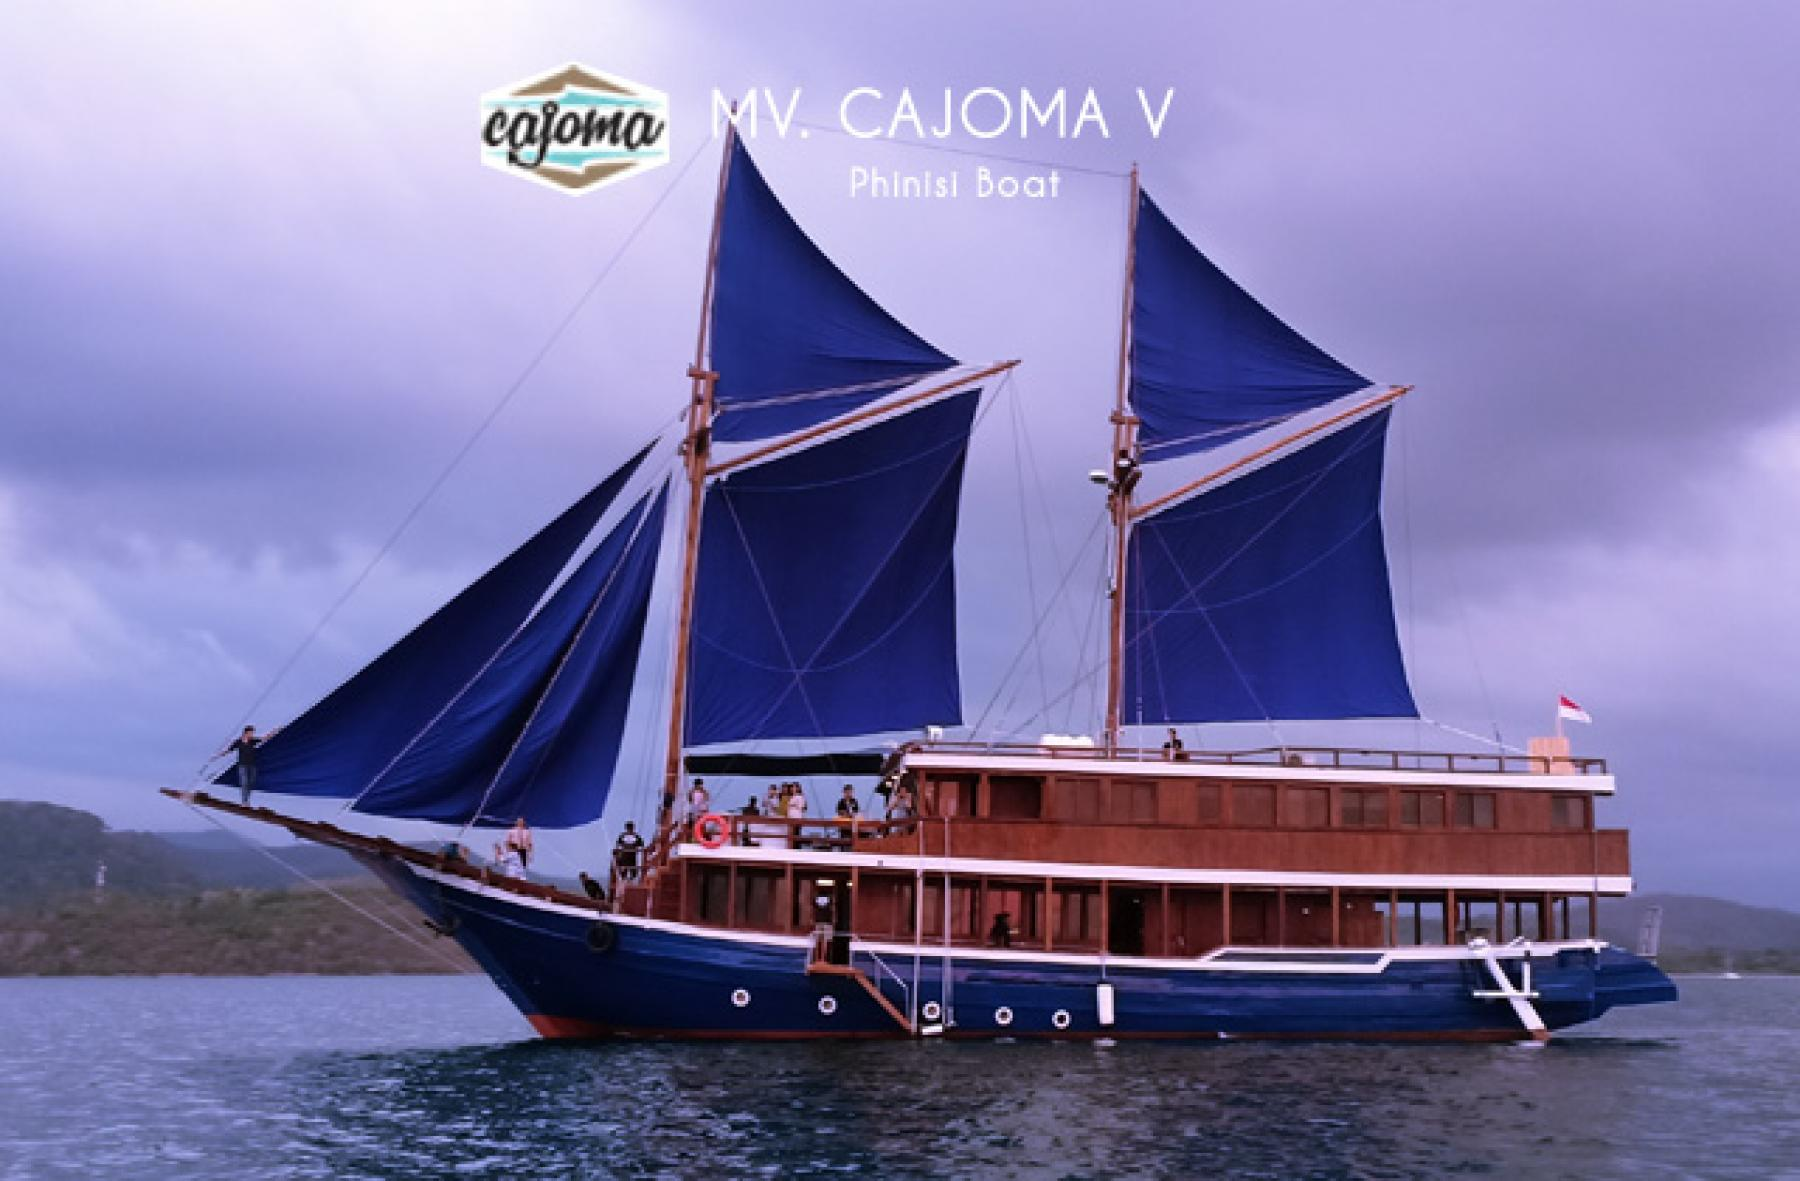 [4D3N] Luxury Live On Board Komodo Islands & Labuan Bajo (Deepavali Weekend) starting at Labuan Bajo, West Manggarai Regency, East Nusa Tenggara, Indonesia